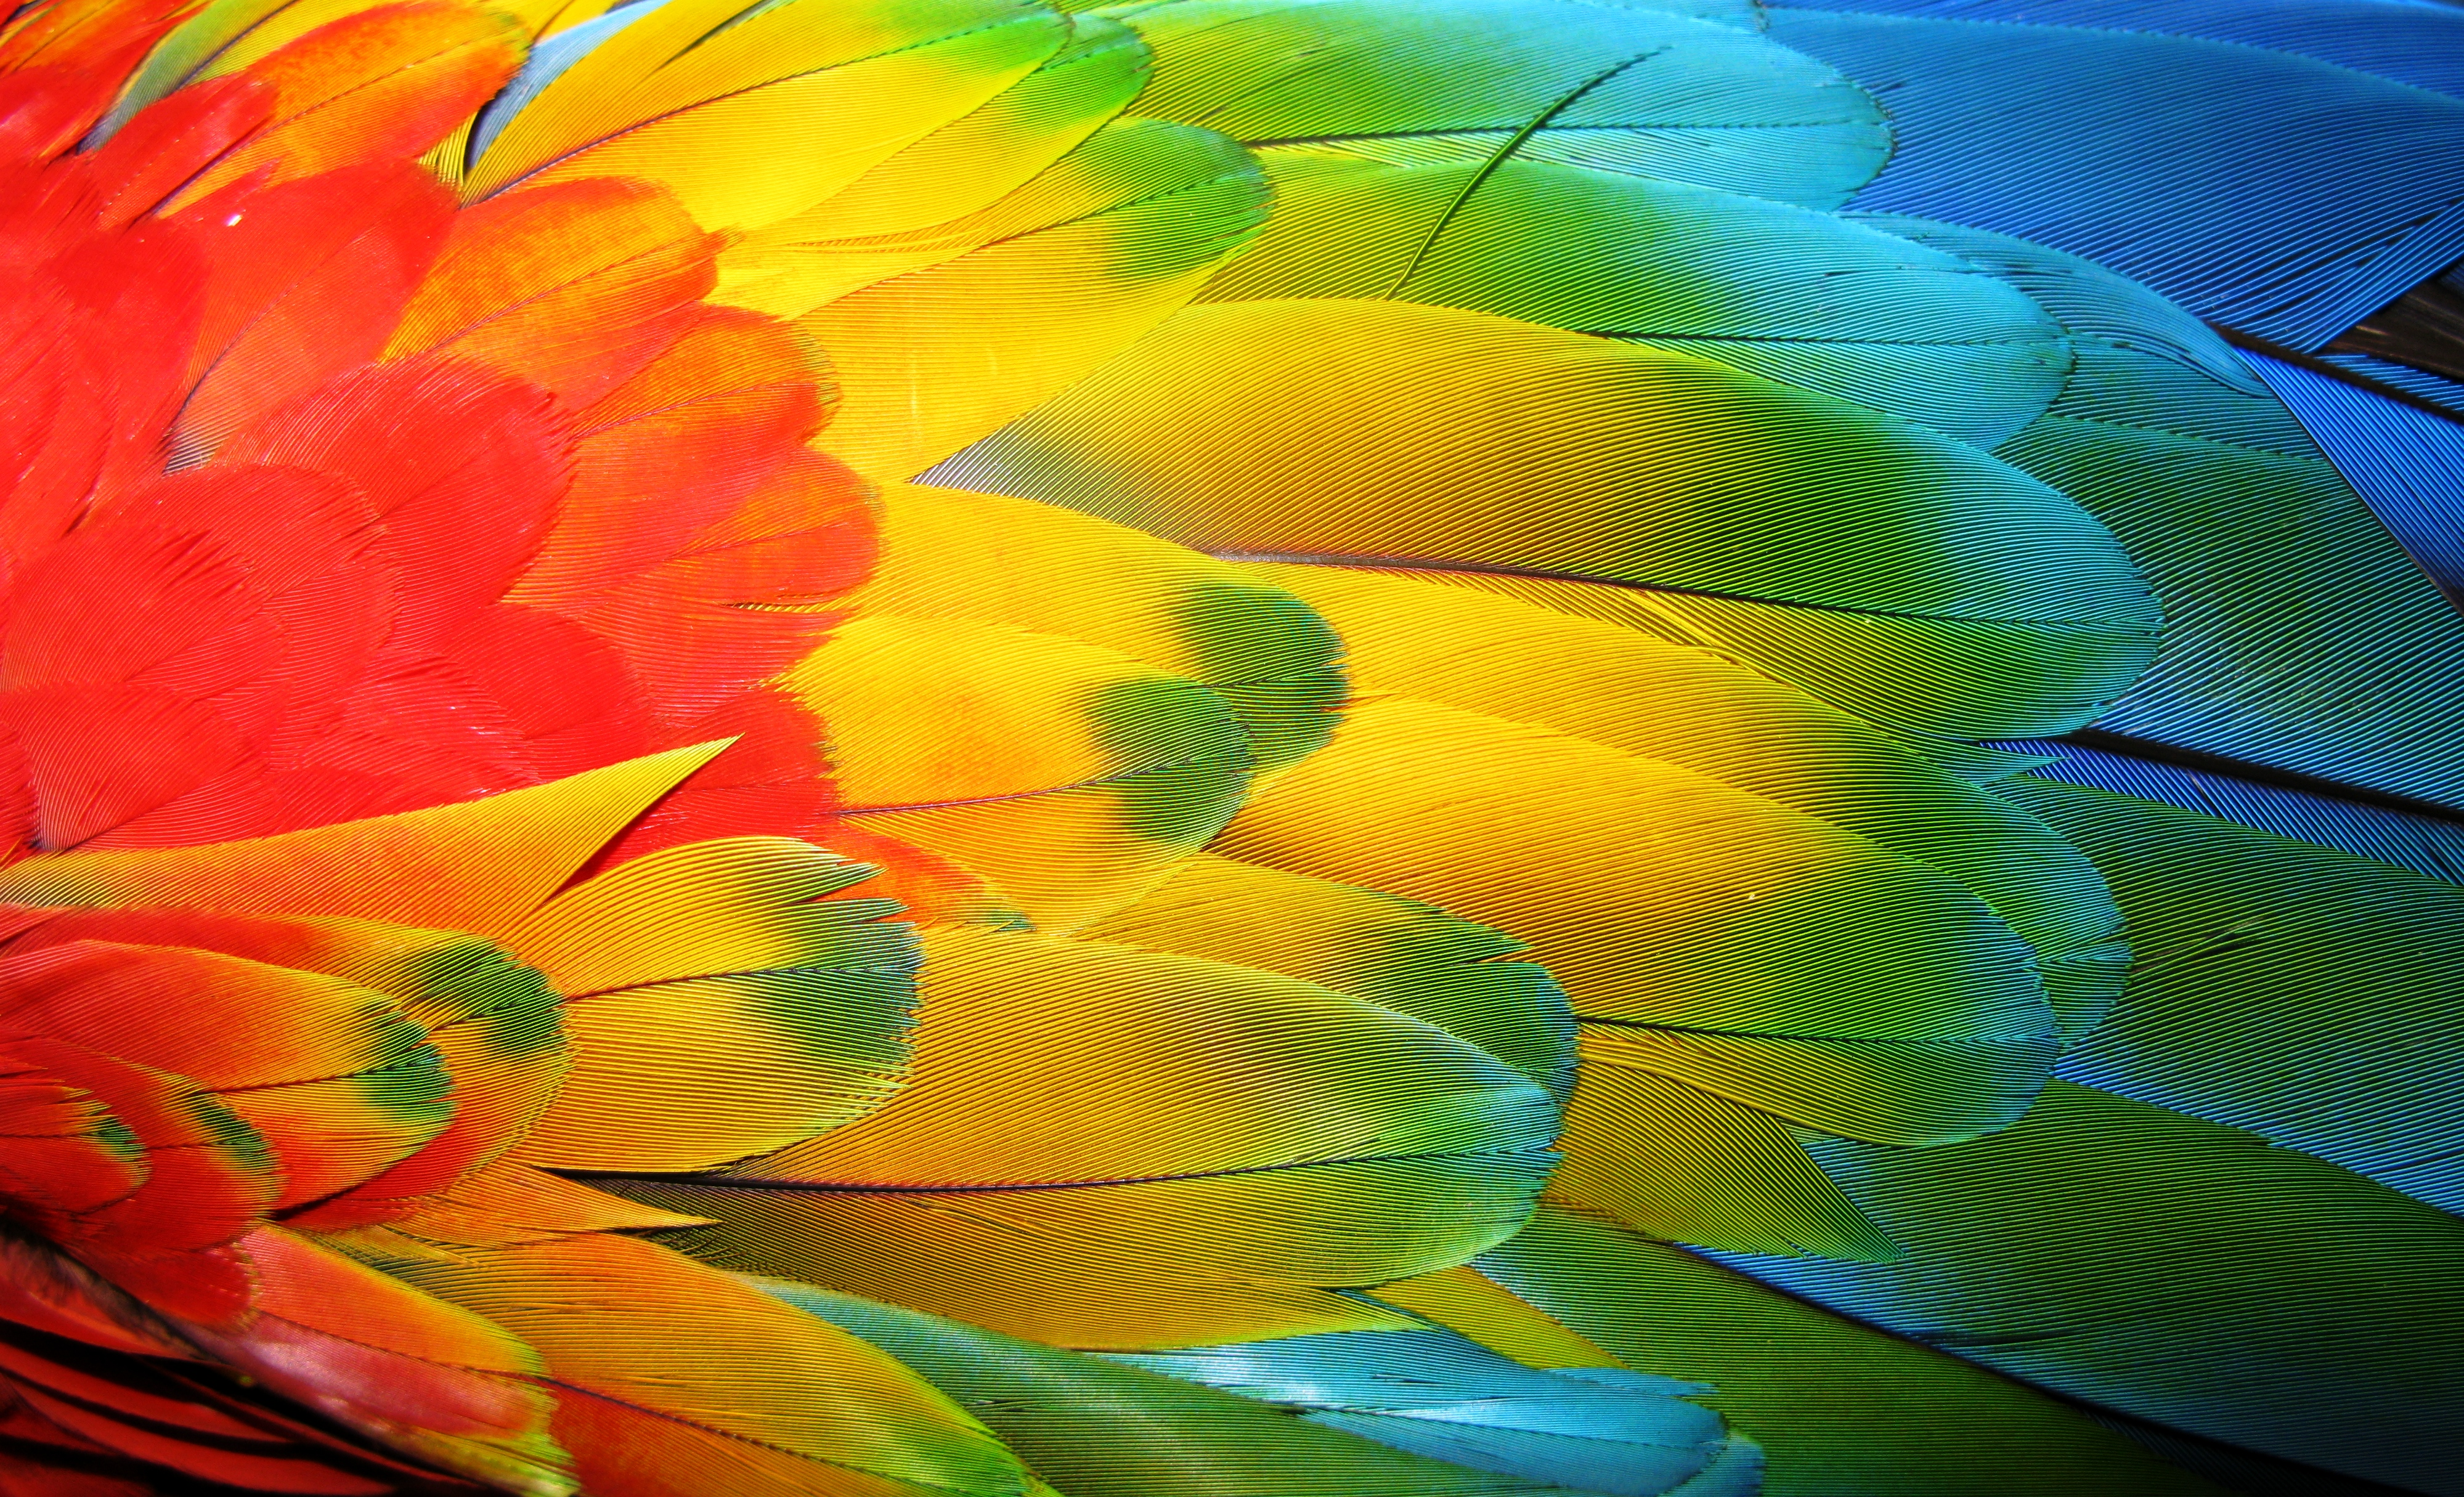 Parrot feathers - photo#19